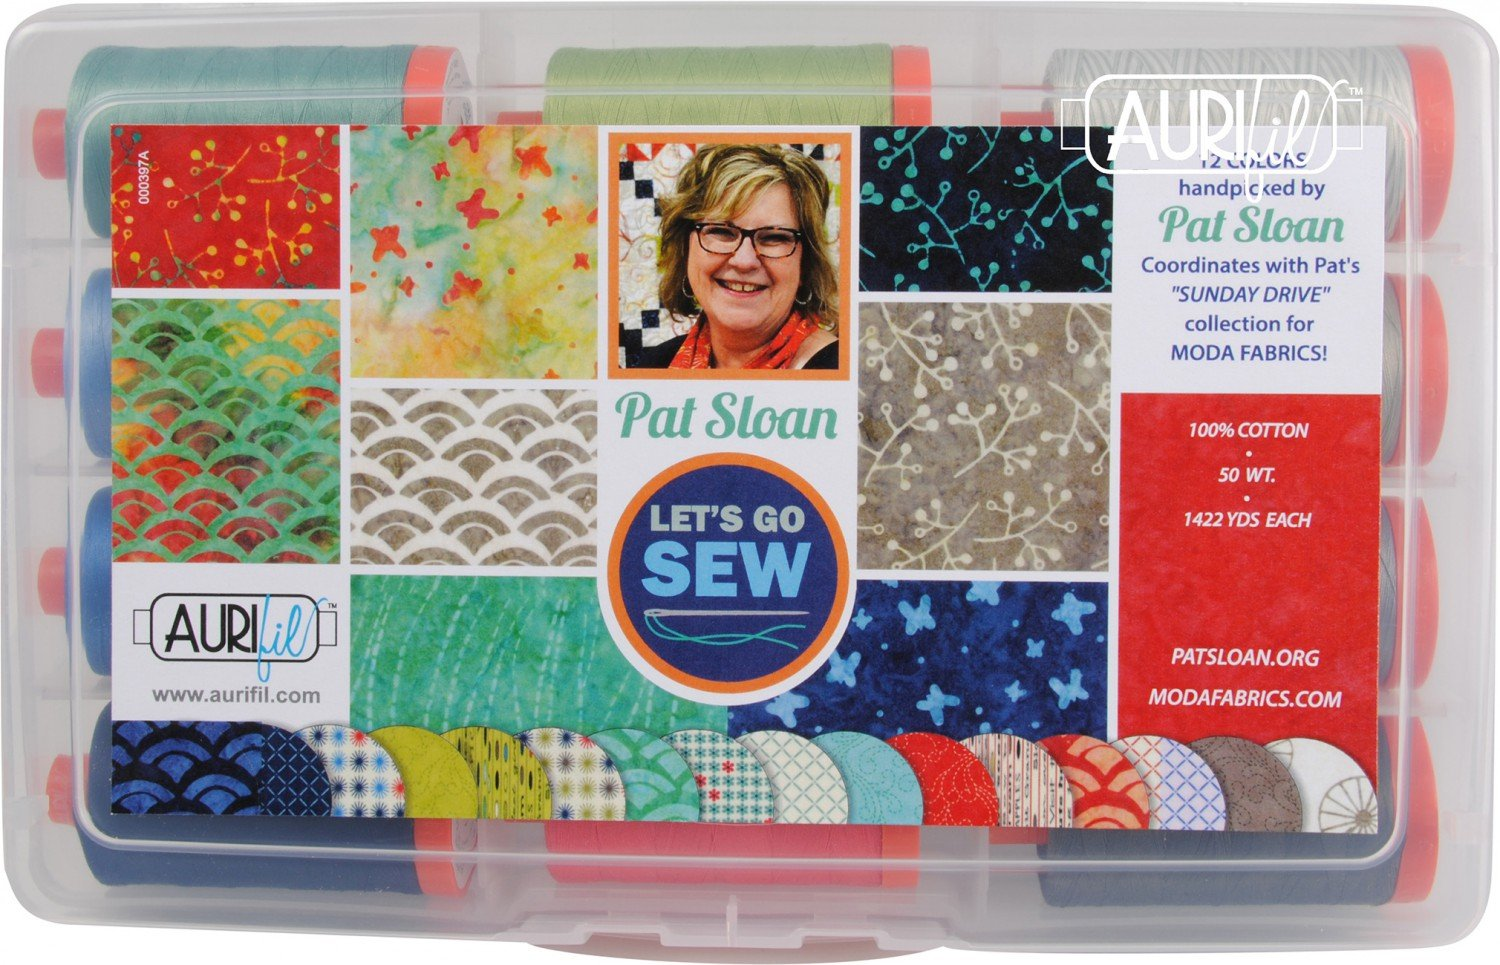 Aurifil Pat Sloan Perfect Box Of Colors Collection